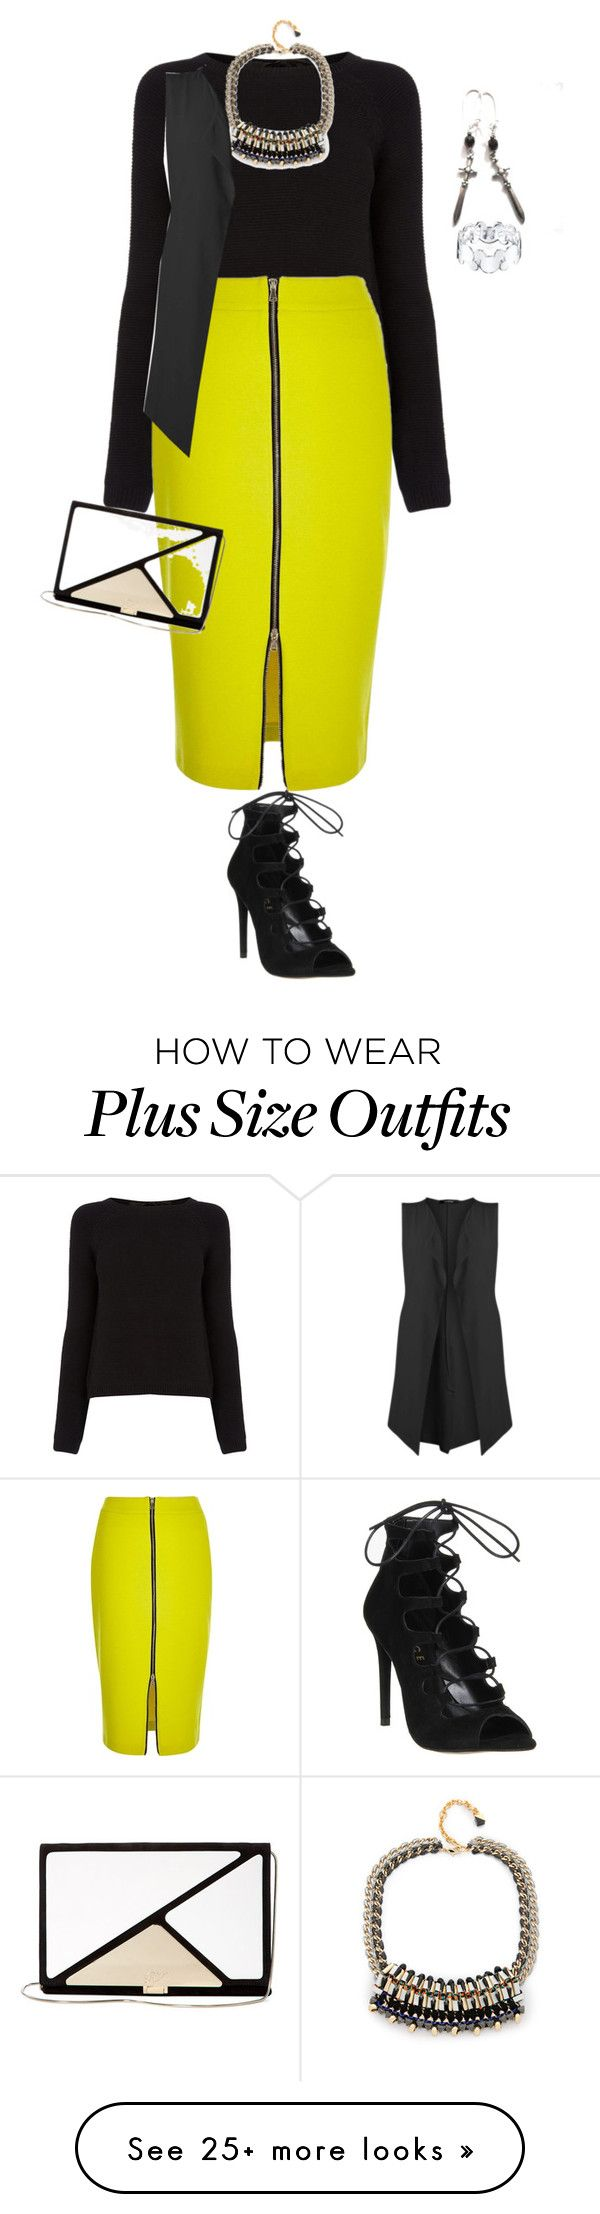 """""""plus size high fashion winter chic"""" by kristie-payne on Polyvore featuring Oasis, River Island, Nocturne, Office, Boohoo, Roger Vivier and Disney"""